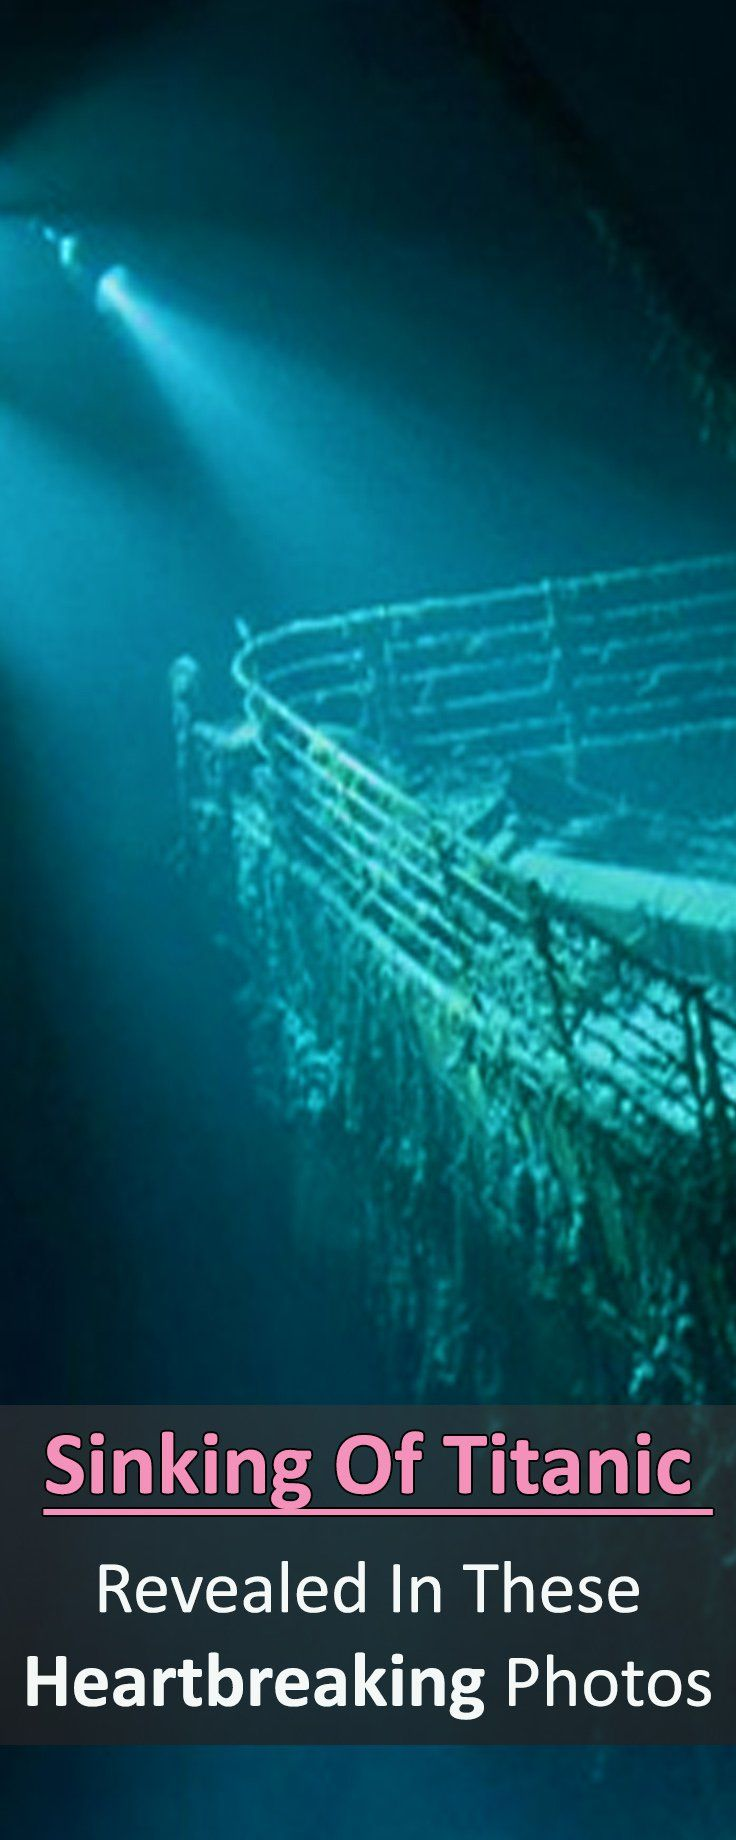 You have probably memorized every detail about the Titanic movie. But check out these facts you didn't know existed that weren't shown in the big screen.